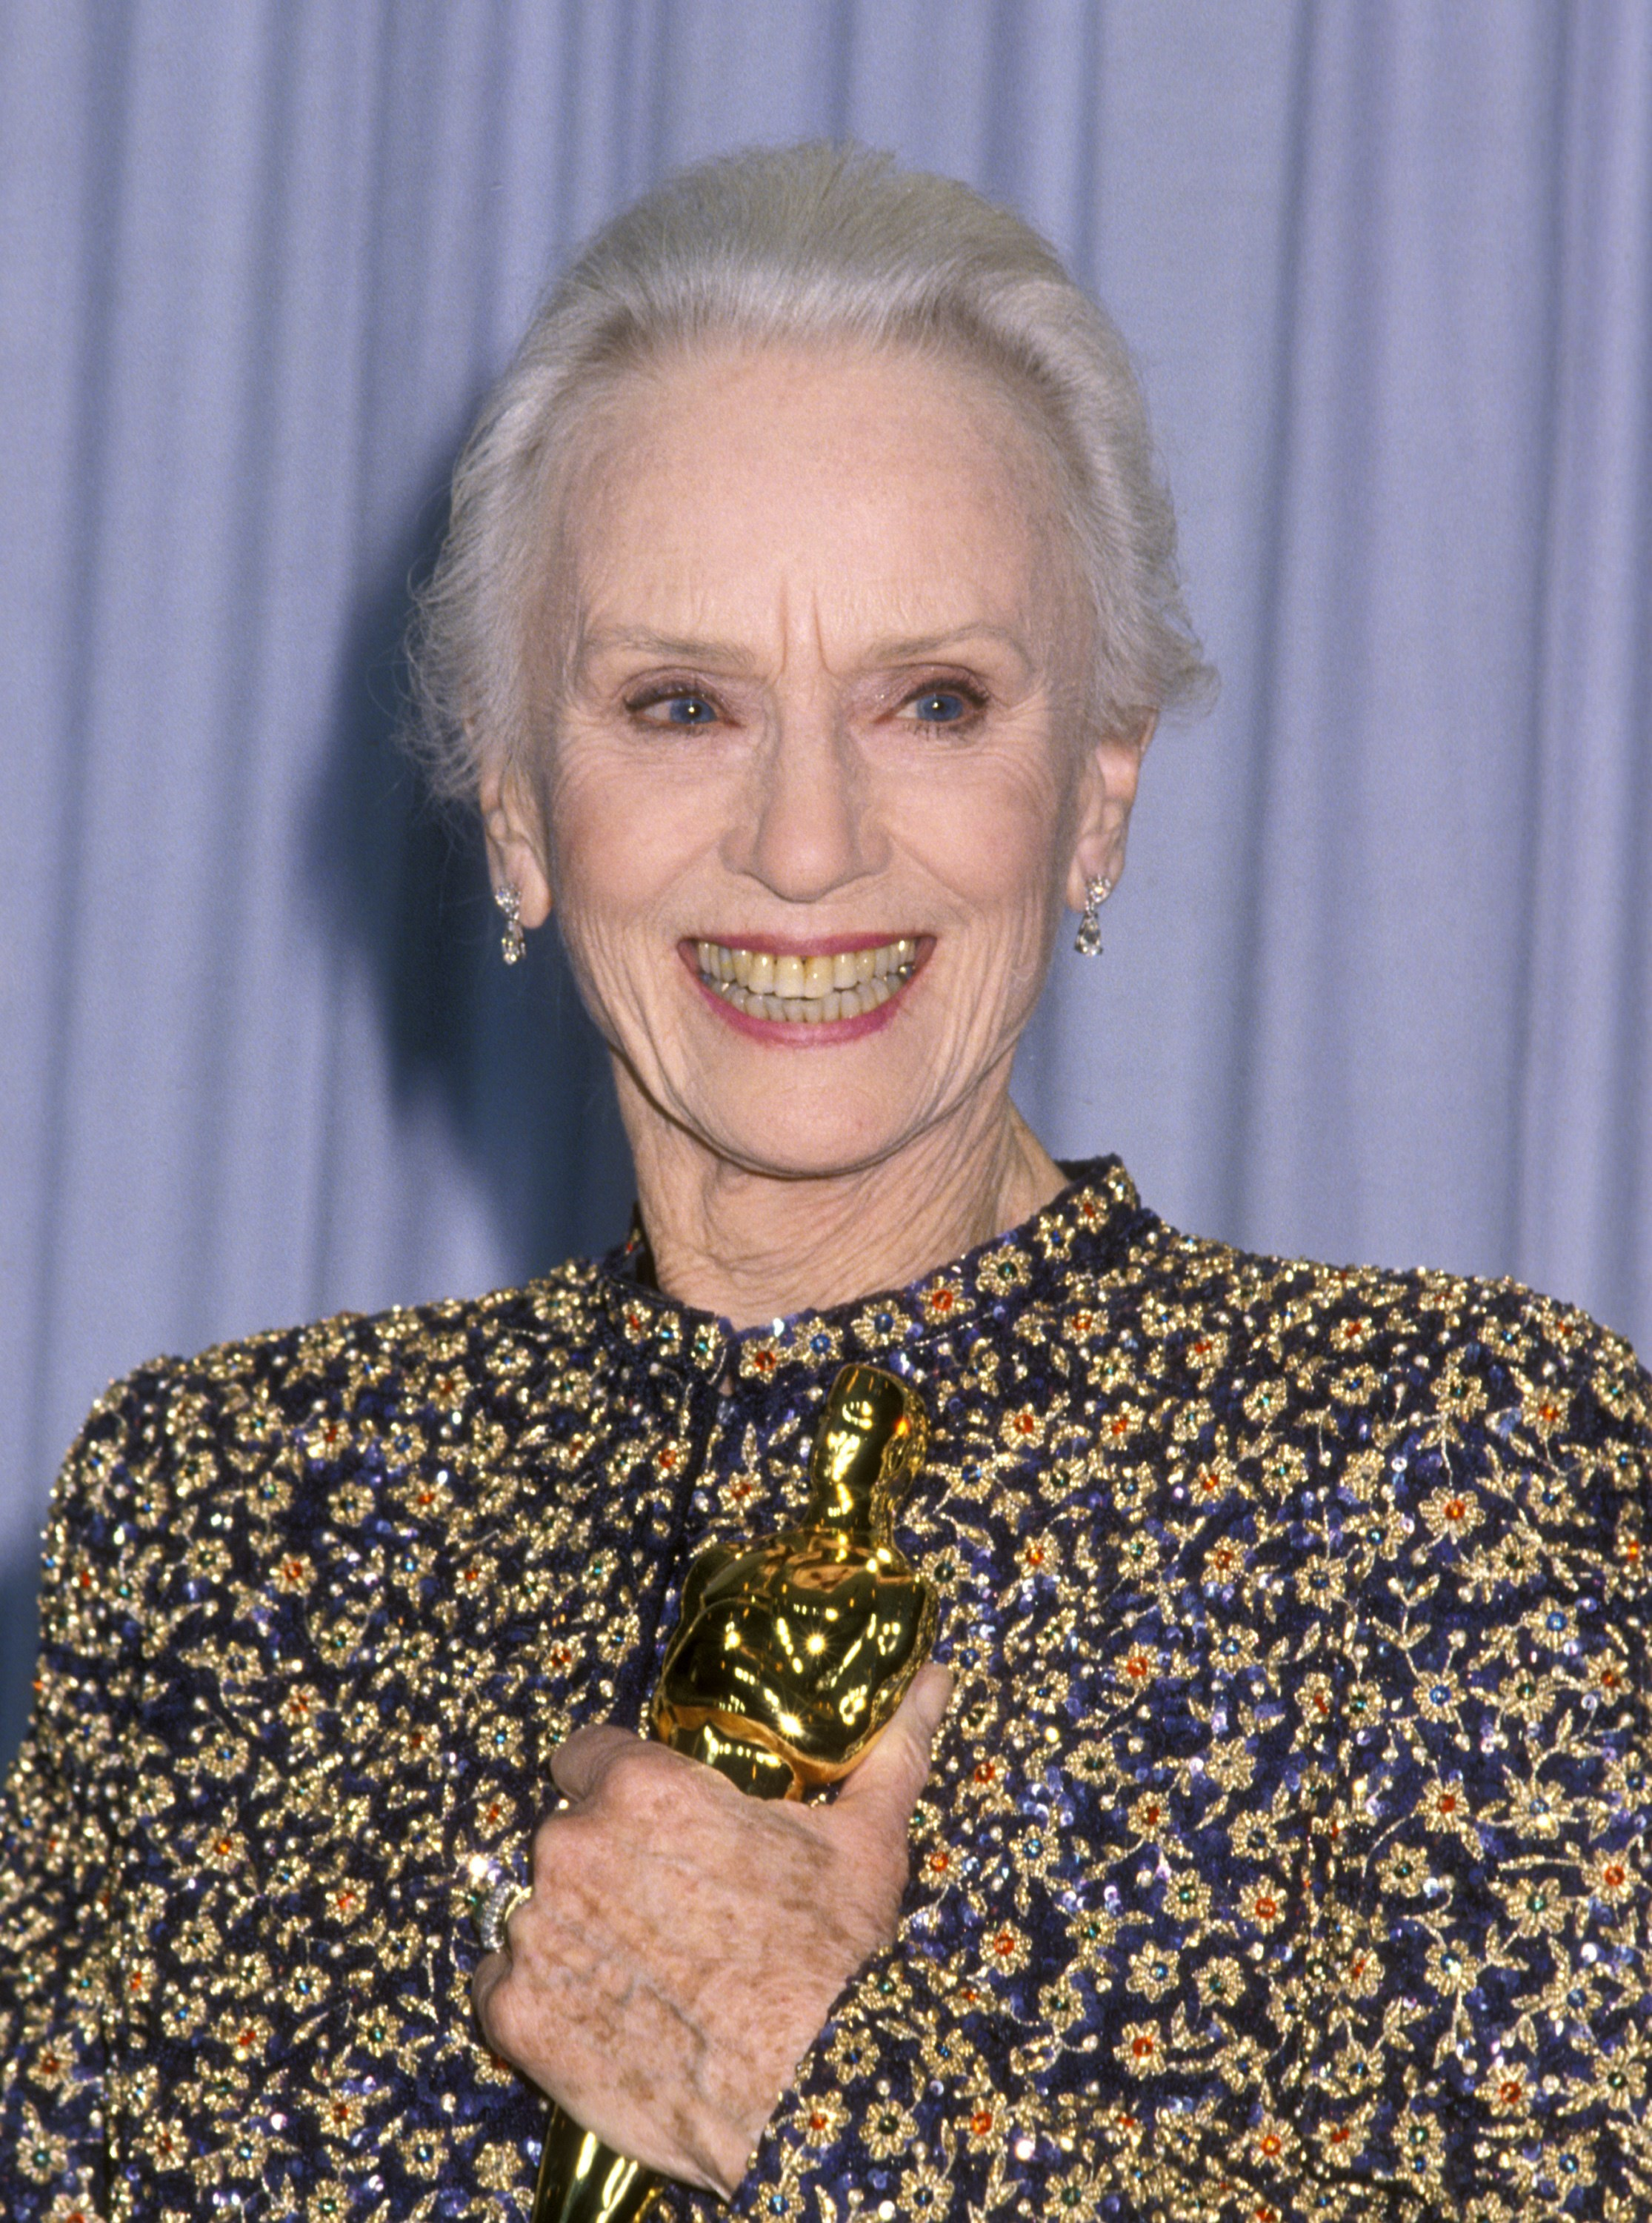 43161 additionally Jessica Tandy further Best Supporting Actor Nominee Tom Hardy Rocks Aviators Three Piece Suit Arrives Oscars Wife Charlotte also Diane Cilento Dead Oscar Nominated Ex Wife 274275 also Sag Awards Movies A Blow For The Post And A Boost For The Big Sick As Actors Further Muddy The Waters Of A Crazy Season Hammond 1202226041. on oscar nomination 2018 supporting actress